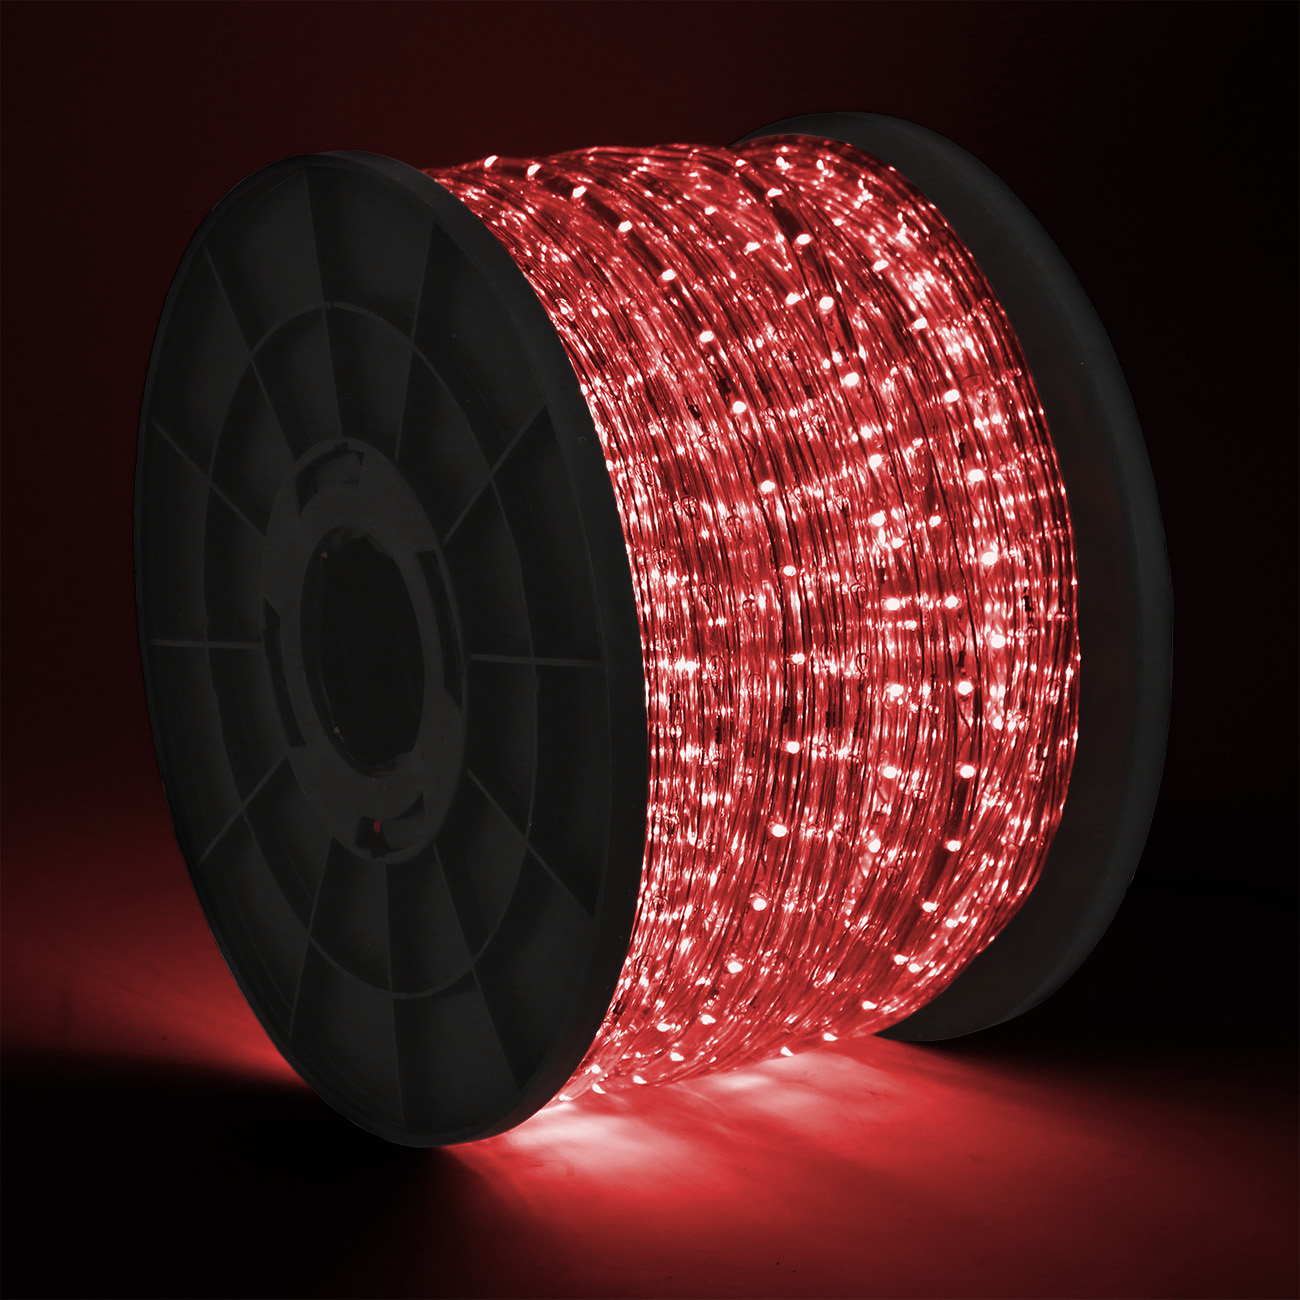 Led Light Outdoor Decoration: 300' 110V LED Rope Light In/Outdoor Home Valentine